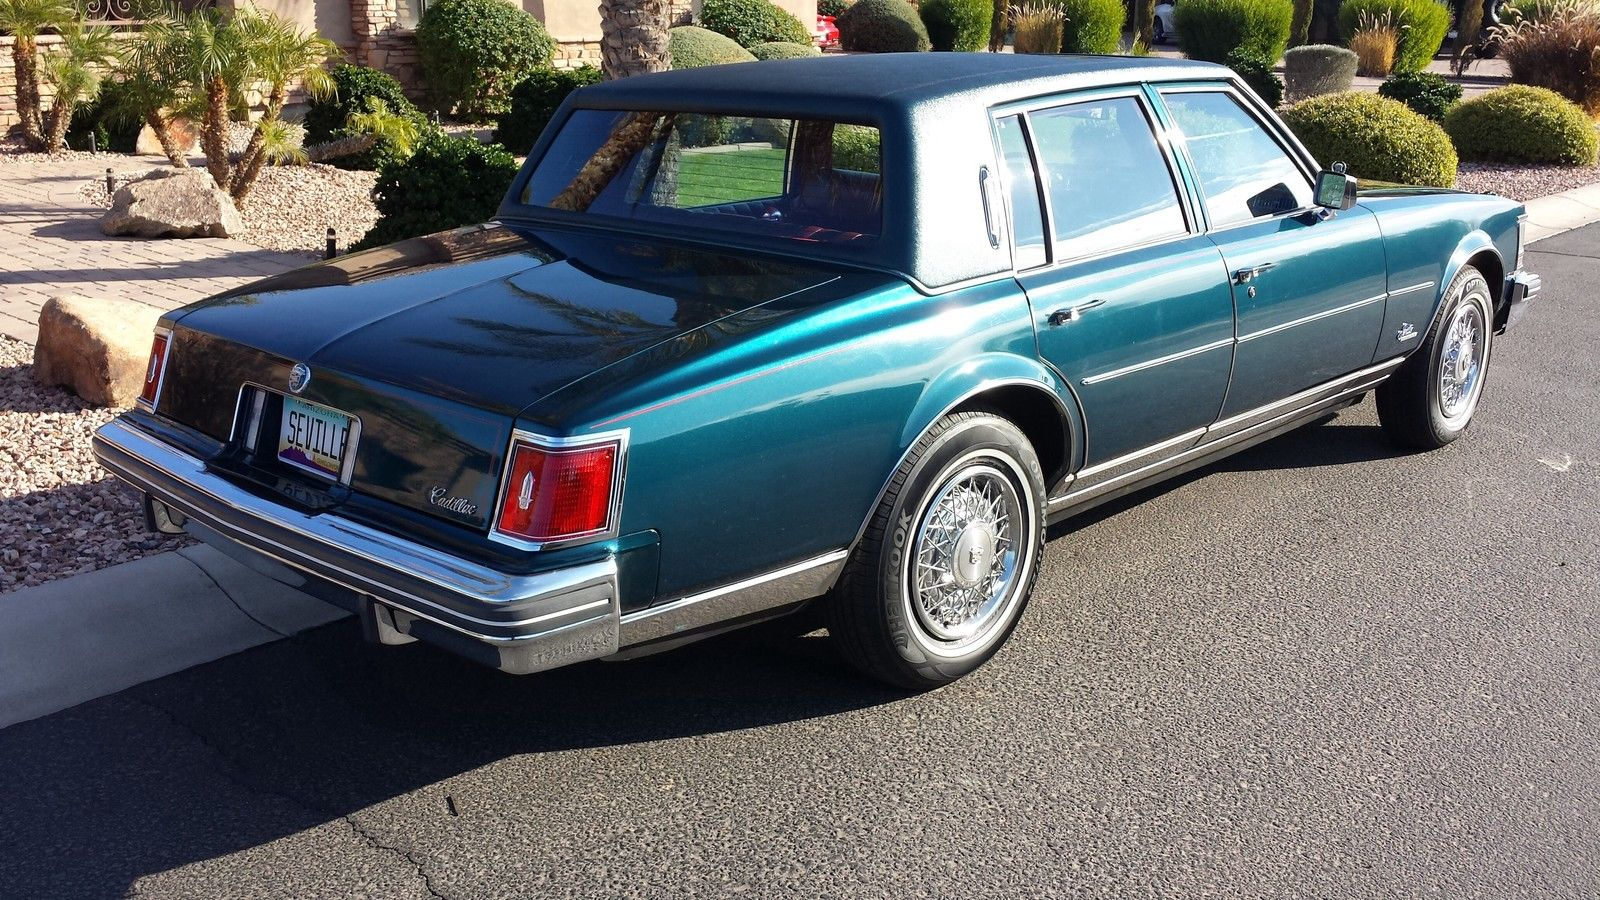 1979 cadillac seville classic cadillac seville 1979 for sale. Black Bedroom Furniture Sets. Home Design Ideas